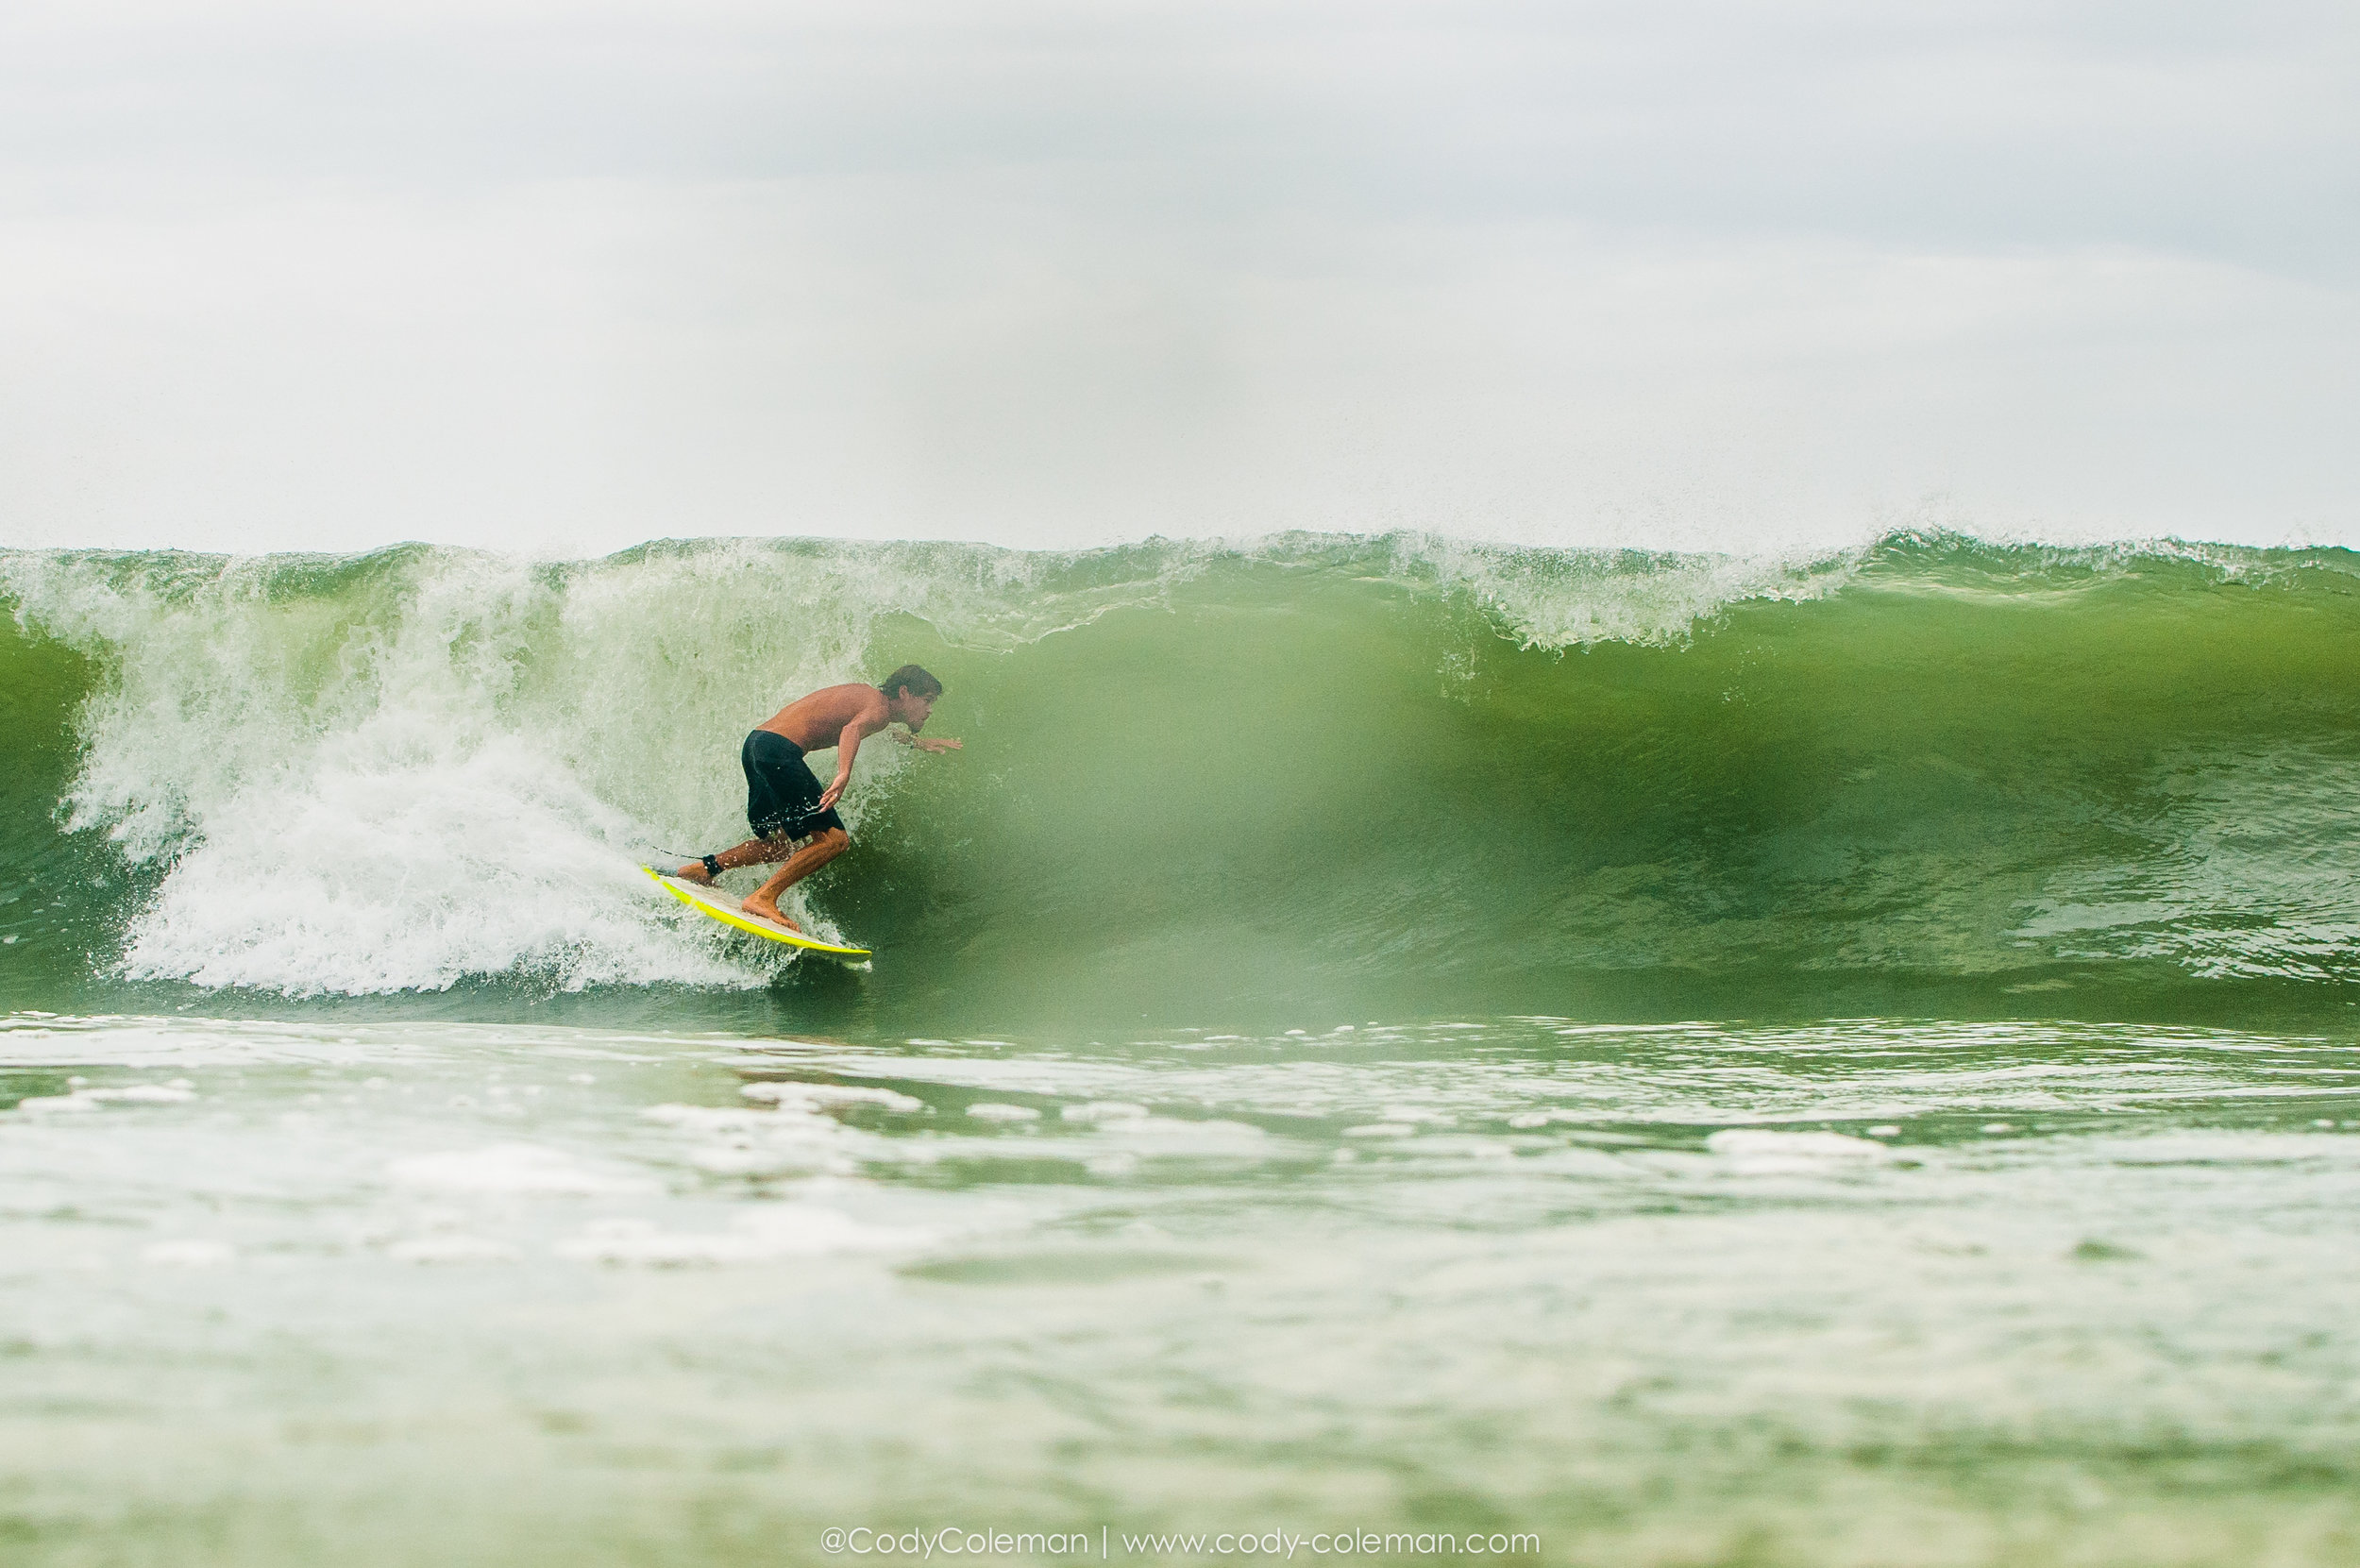 Alecs first wave on Wednesday. Not a maker, but set the tone for sure...